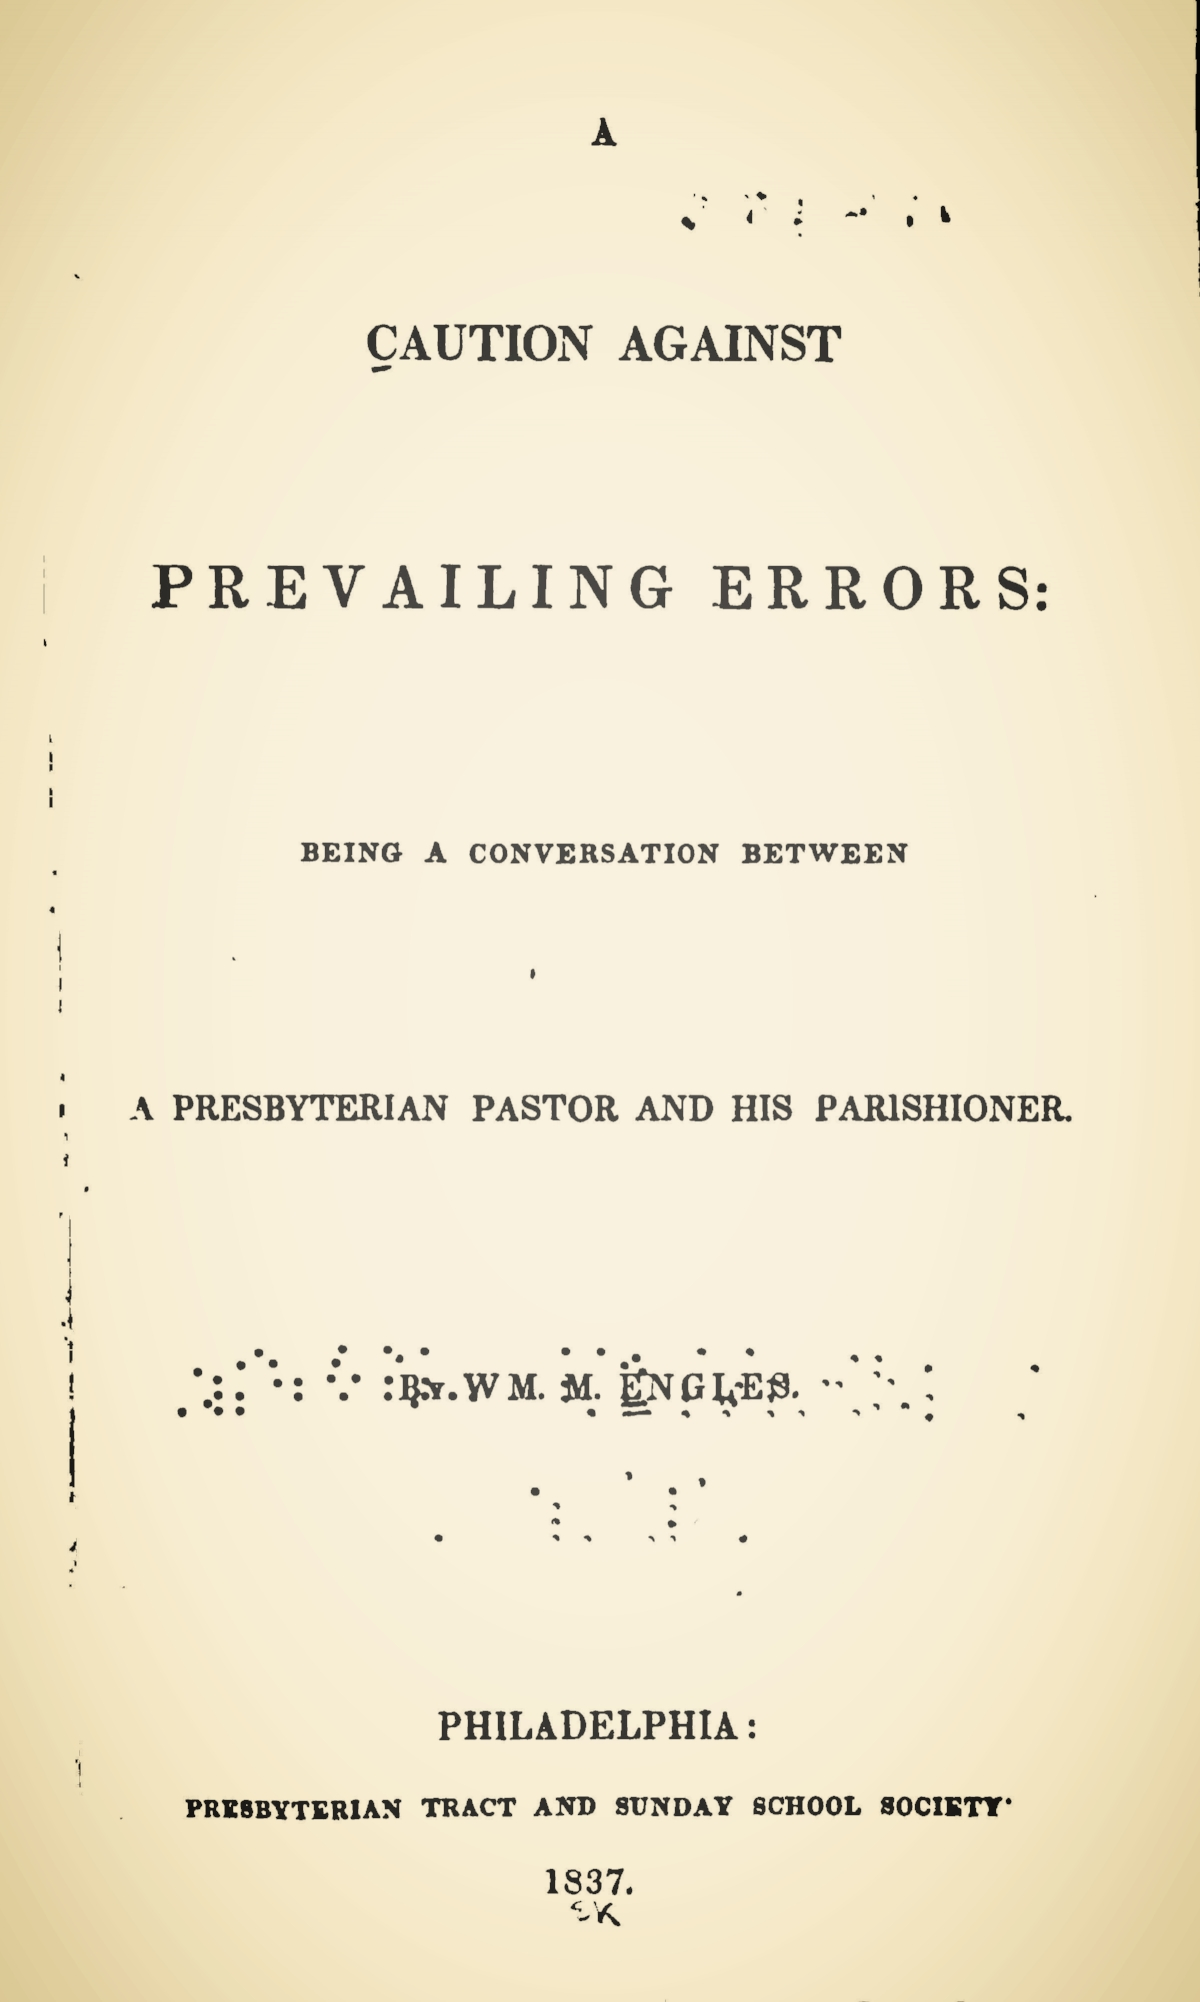 Engles, William Morrison, A Caution Against Prevailing Errors Title Page.jpg